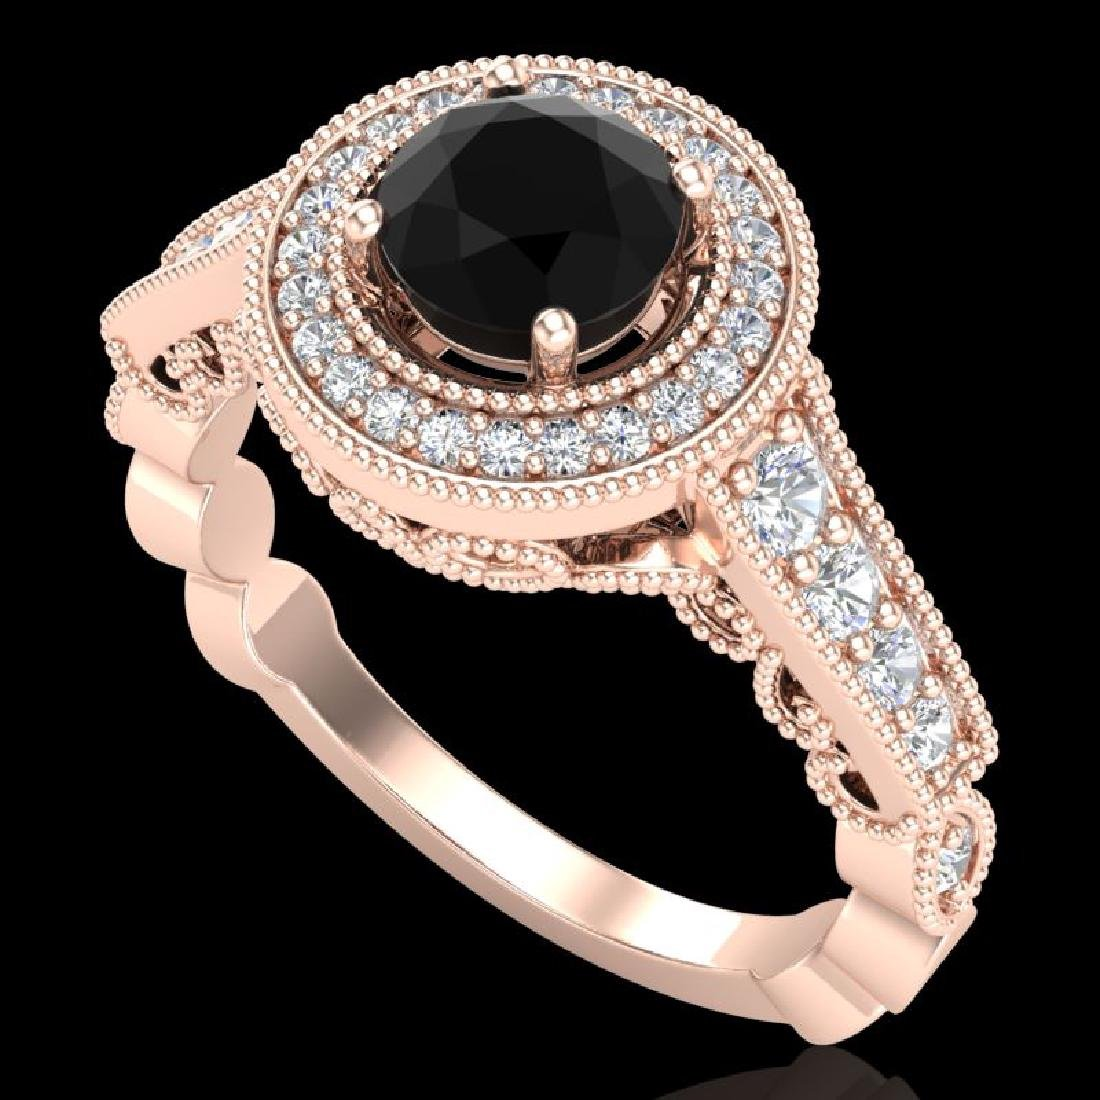 1.12 CTW Fancy Black Diamond Solitaire Engagment Art